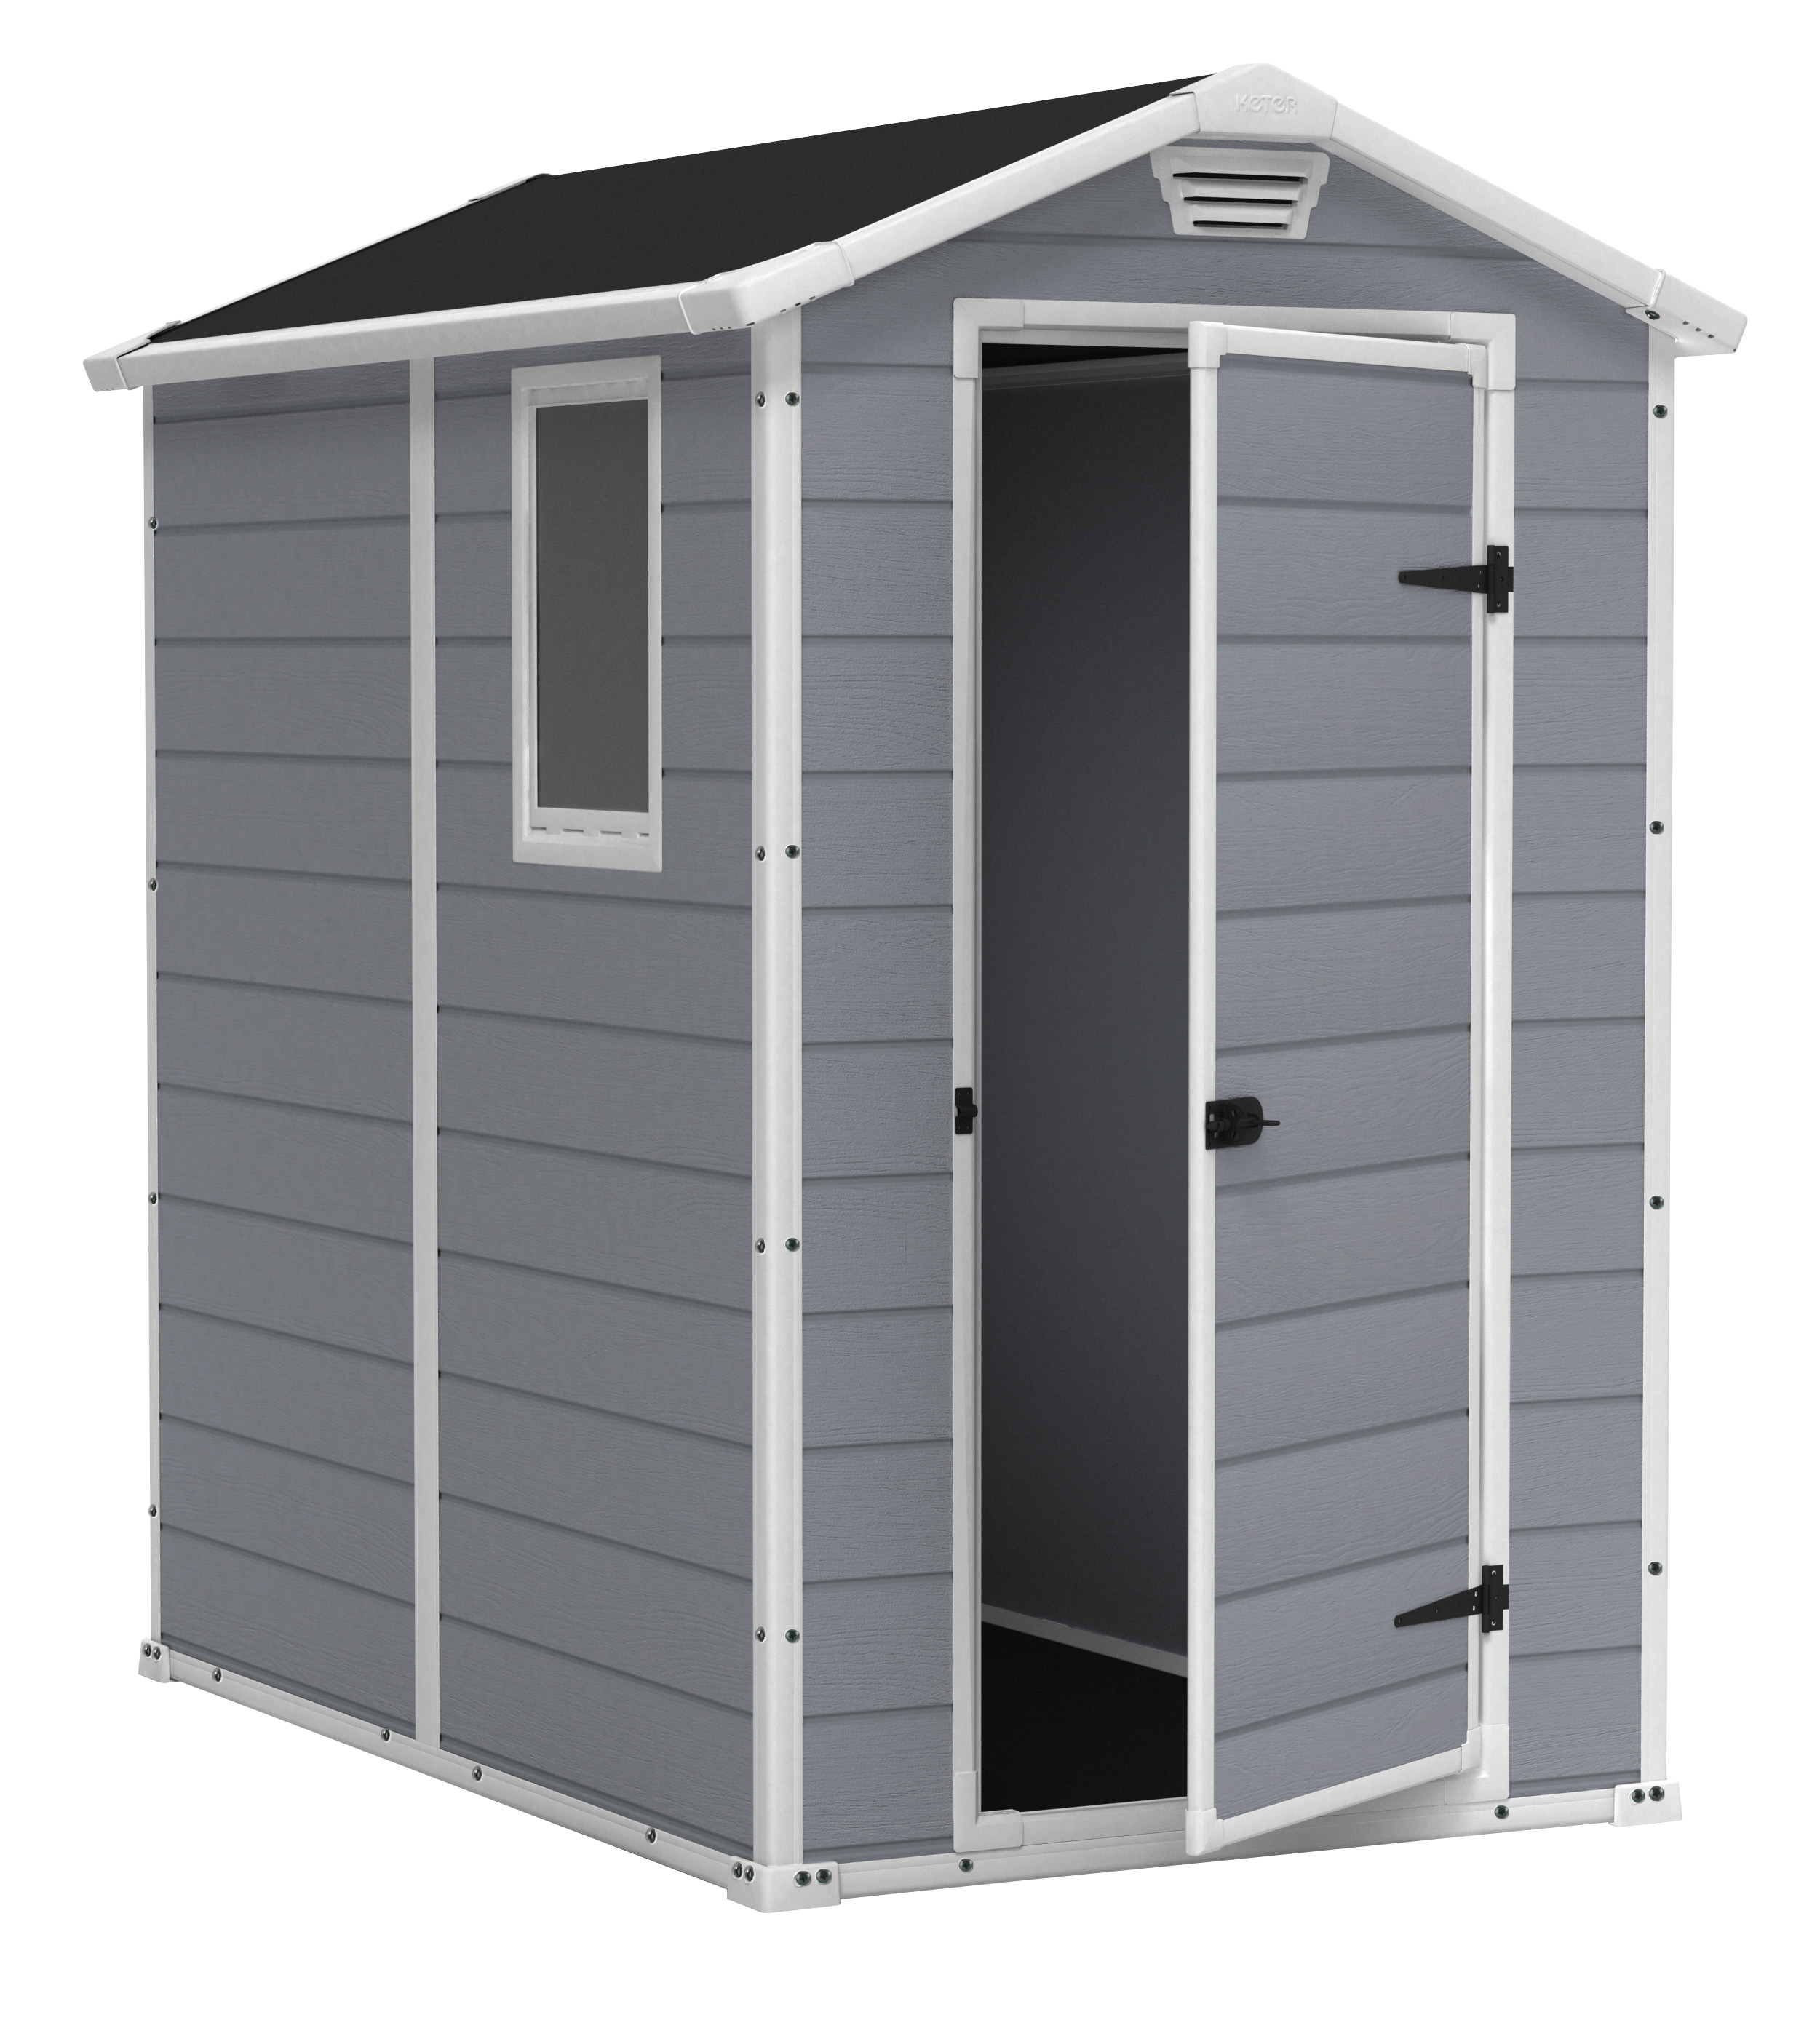 plastic sheds keter manor 4u0027 x 6u0027 resin storage shed, all-weather plastic outdoor NSMTOID